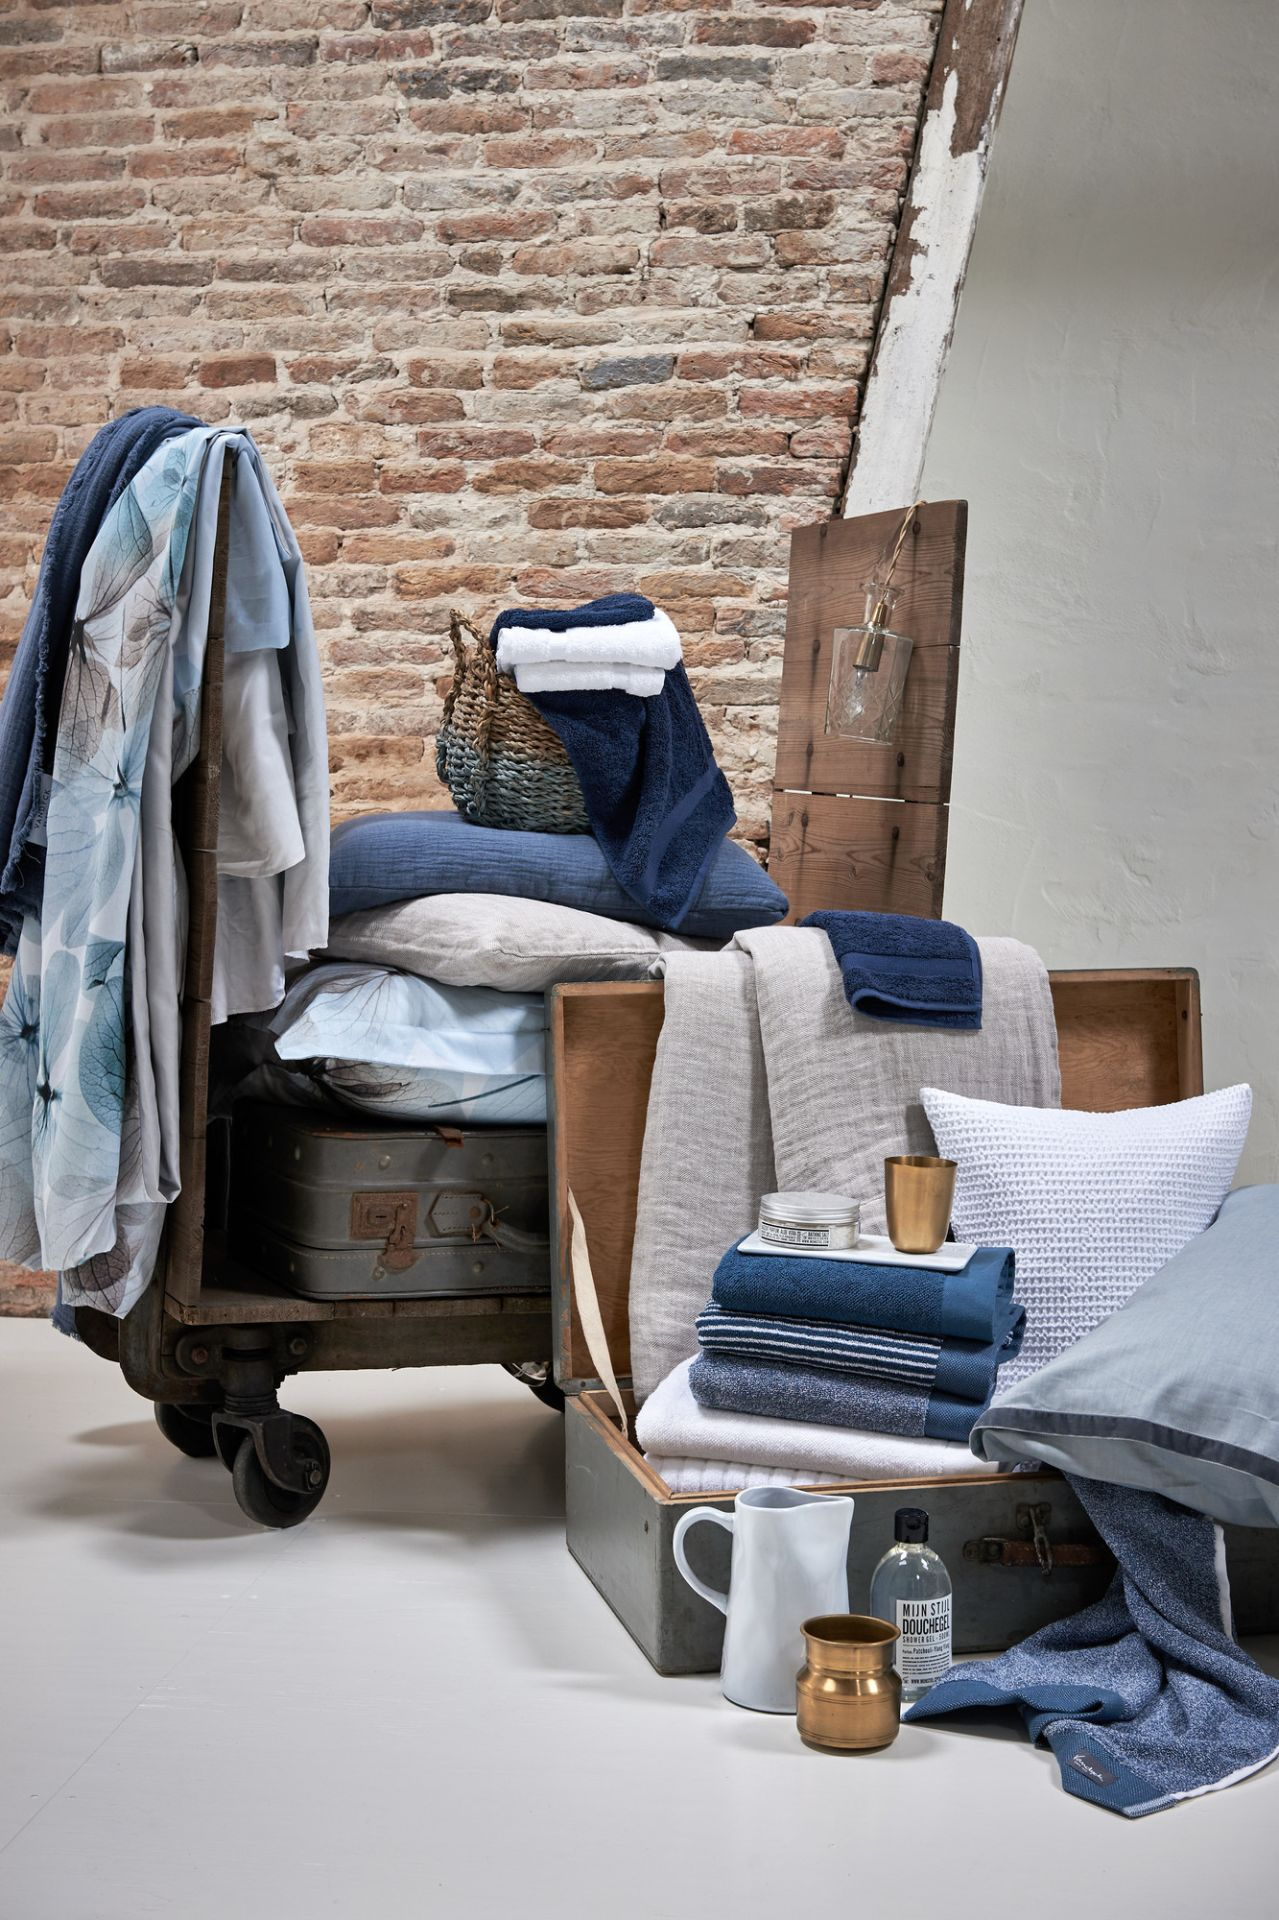 VanDyck bedtextiel Lovestory 403, Pure 8, Pure 16 184 faded denim, Pure 22 011 grey, Home 71 090 white, Home uni, Petite Ligne, Home Mouline 403 Vintage blue bij Slaapkenner Lisse in Lisse